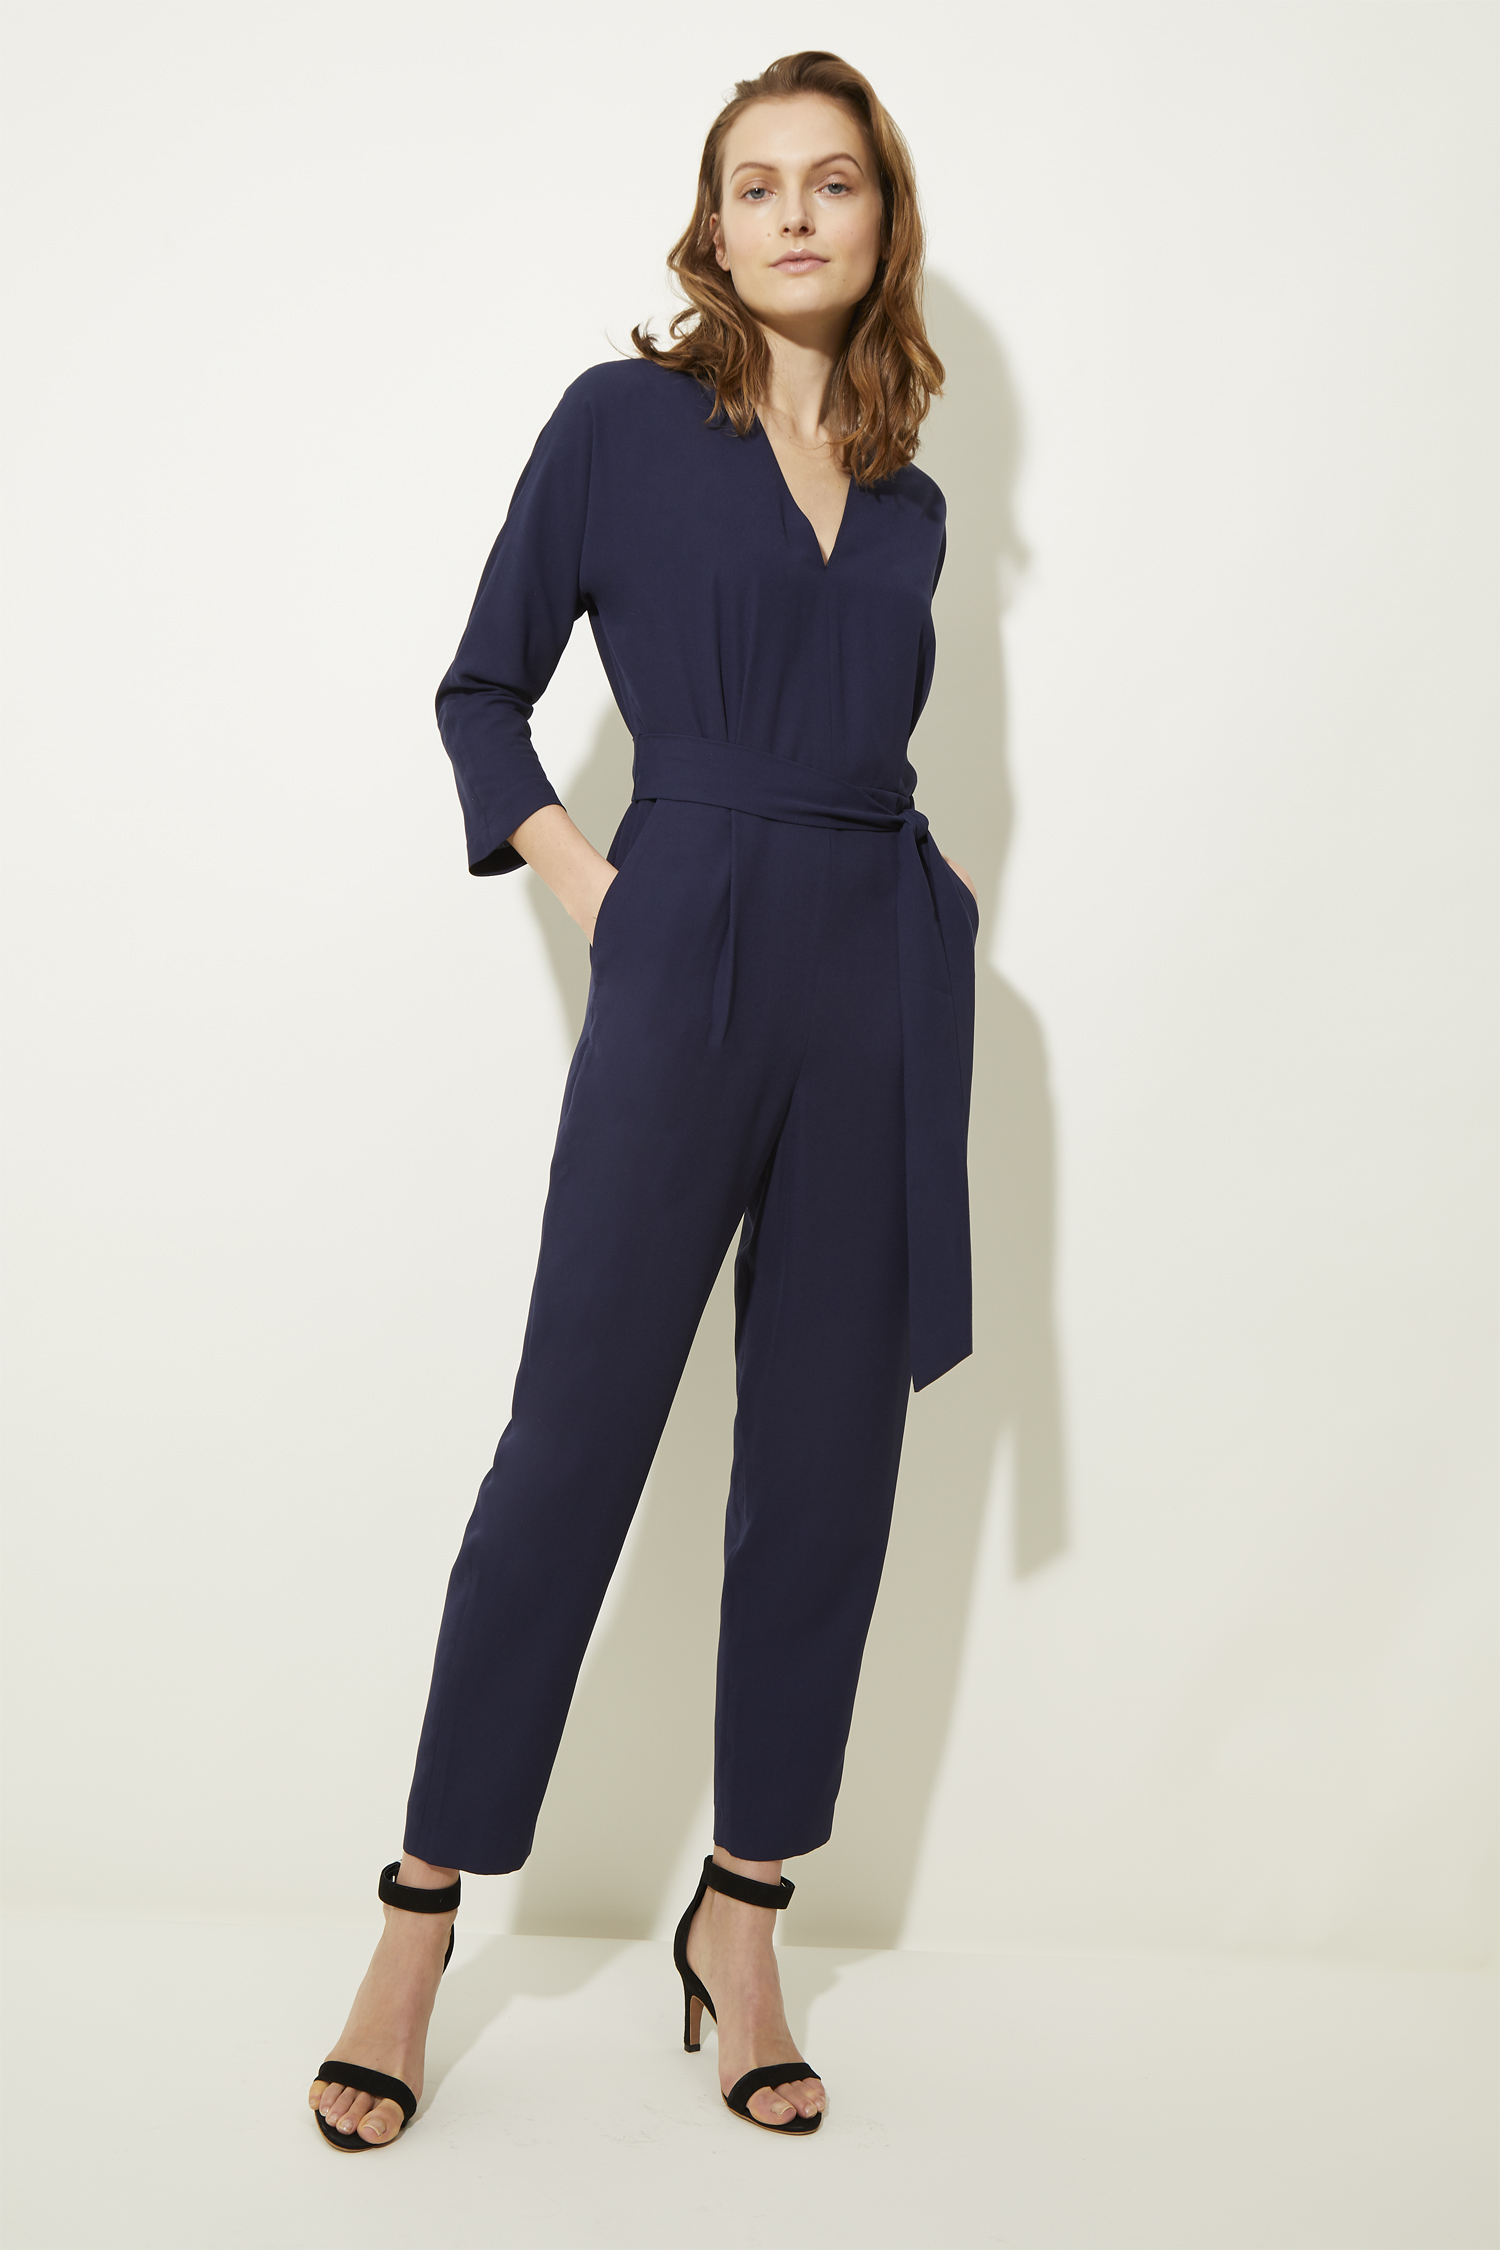 women's jumpsuits for work